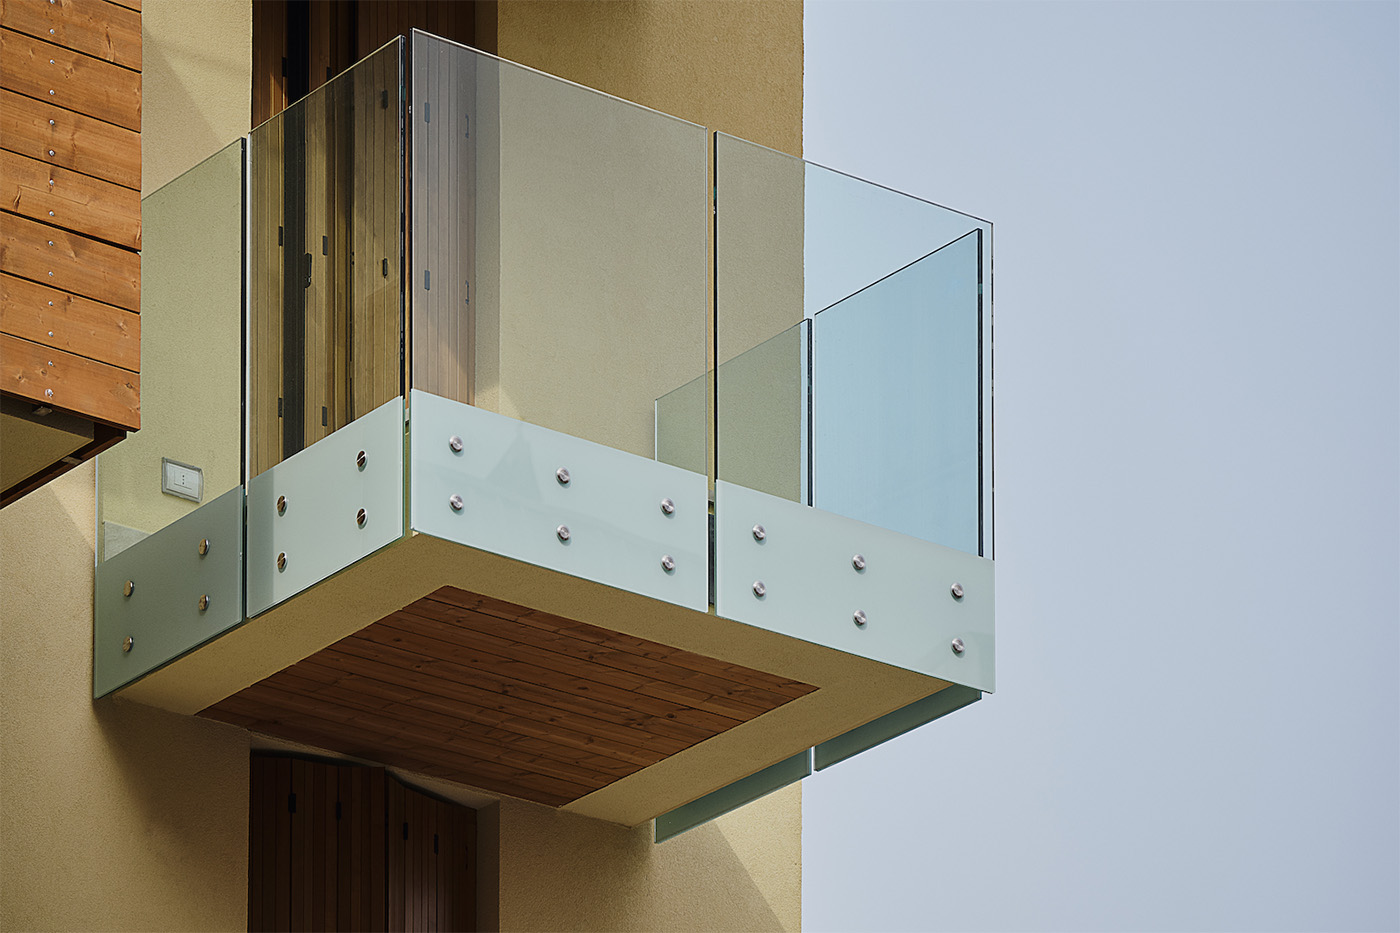 Balcony with balustrade in Point Aluvetro glass